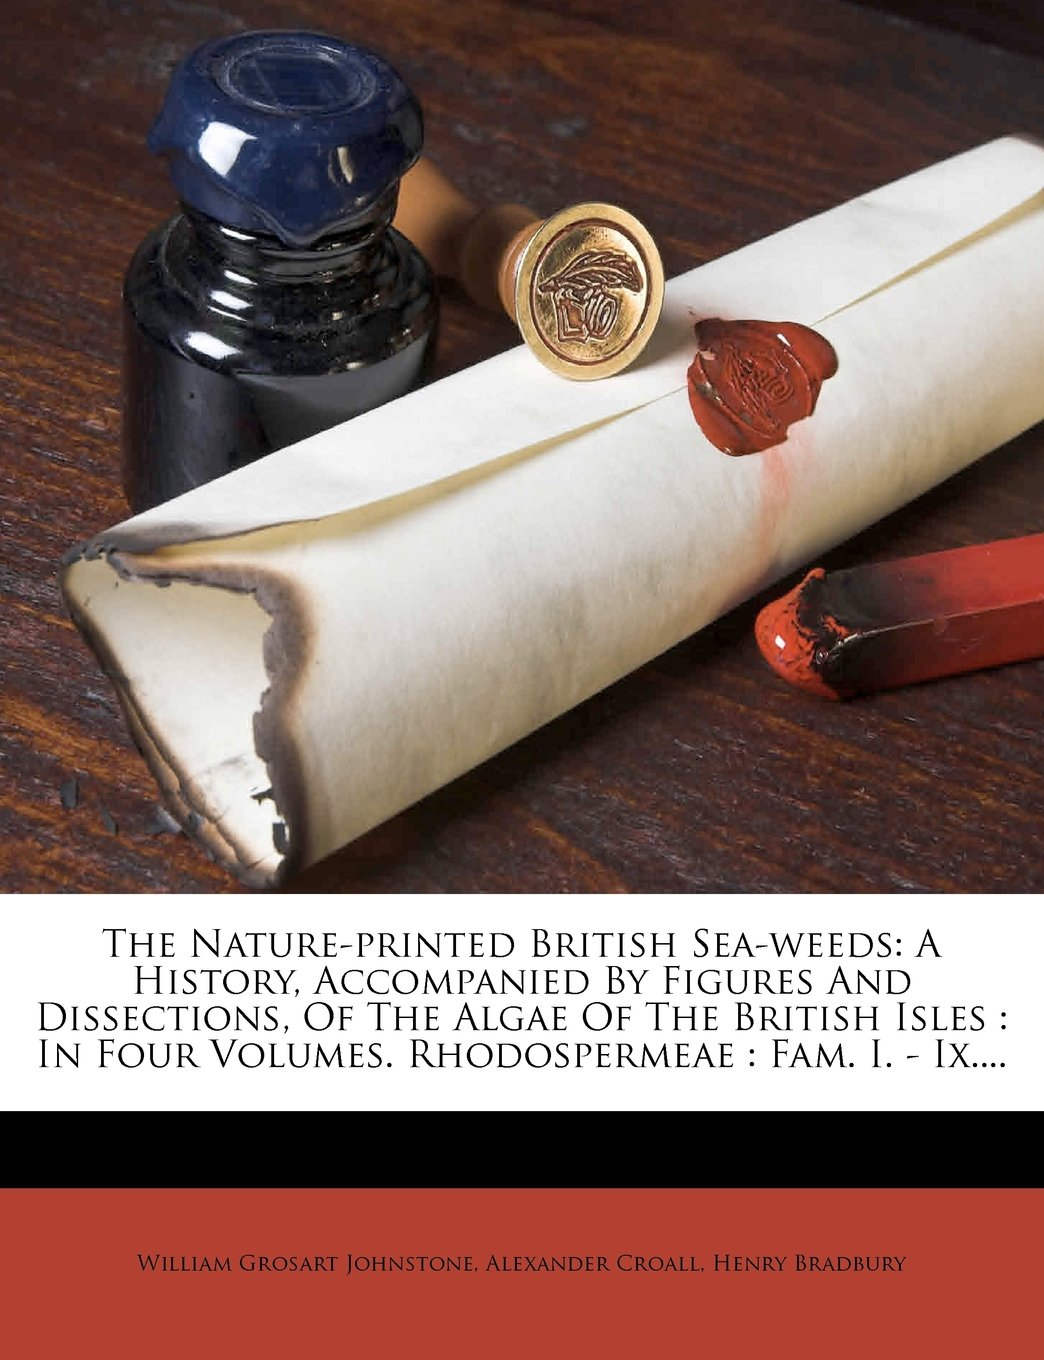 Read Online The Nature-printed British Sea-weeds: A History, Accompanied By Figures And Dissections, Of The Algae Of The British Isles : In Four Volumes. Rhodospermeae : Fam. I. - Ix.... pdf